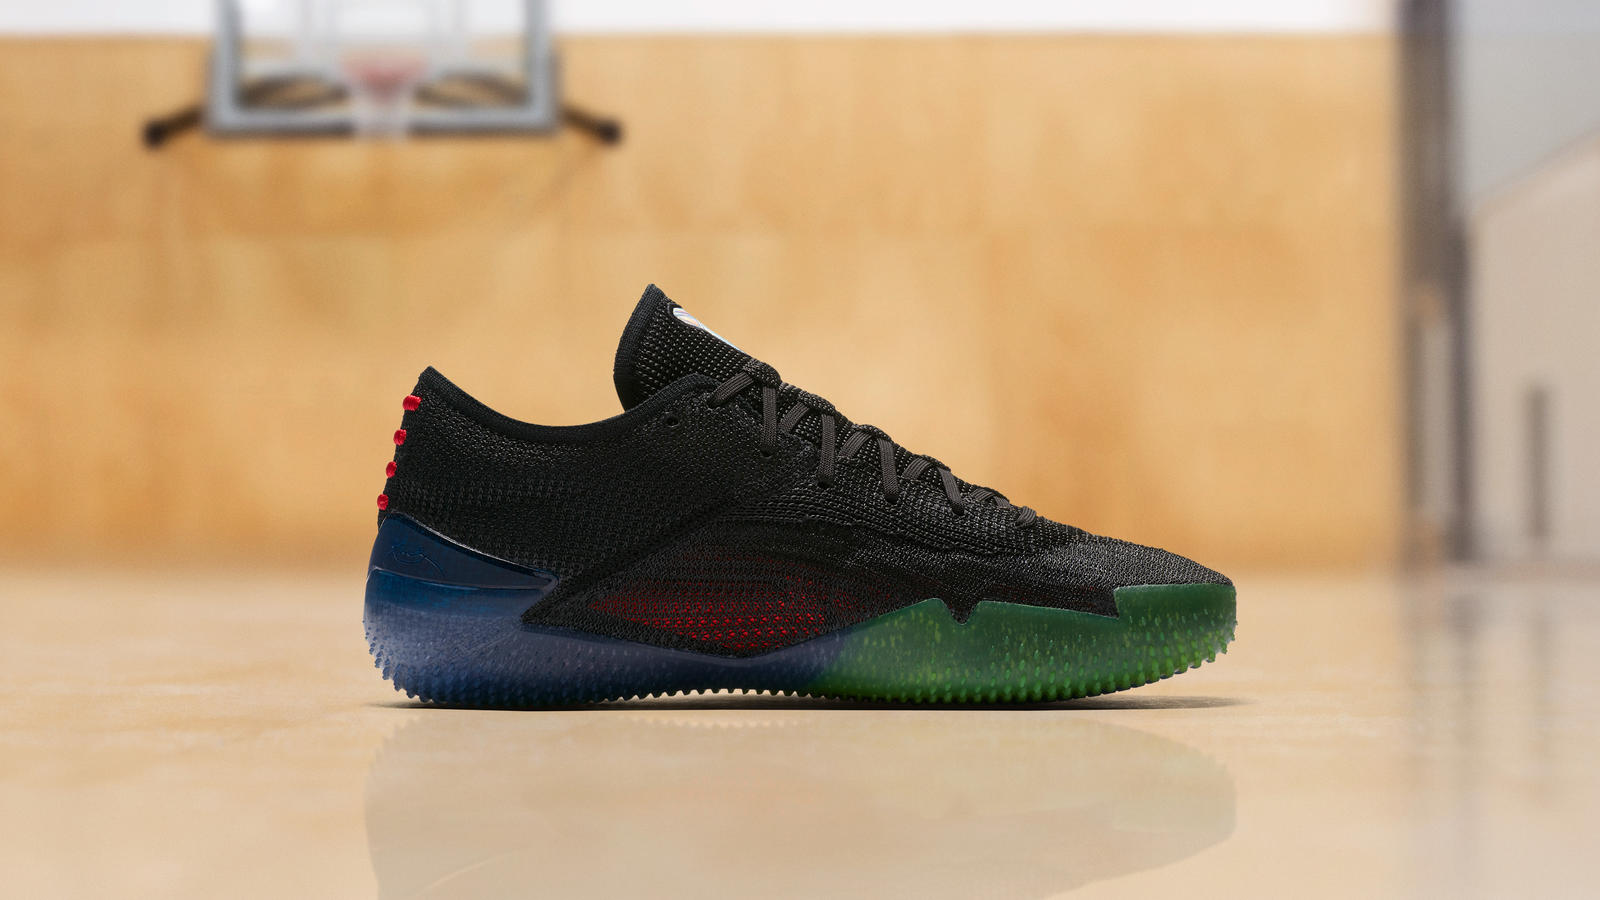 180321 footwear kobe 0015 med native 1600